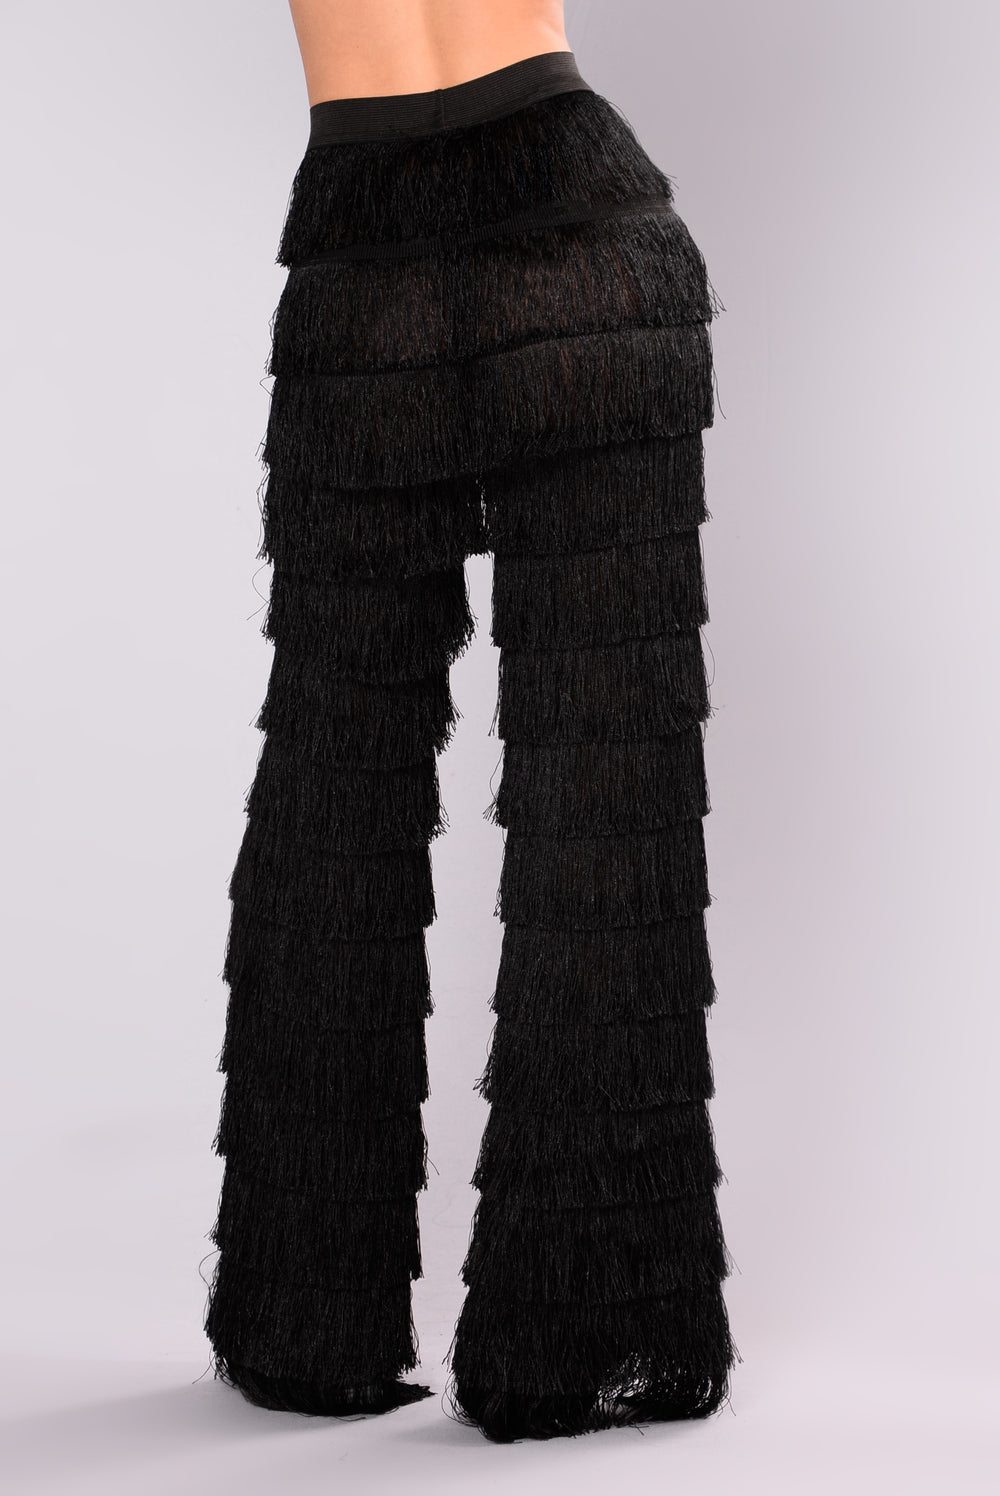 Head West Fringed Pants cuz it's time to explore the coastline, babe. These sikk pants feature an ultra sleek 'N curve grippin' black construction, high waisted cut, and fringed detailing from the knee down.